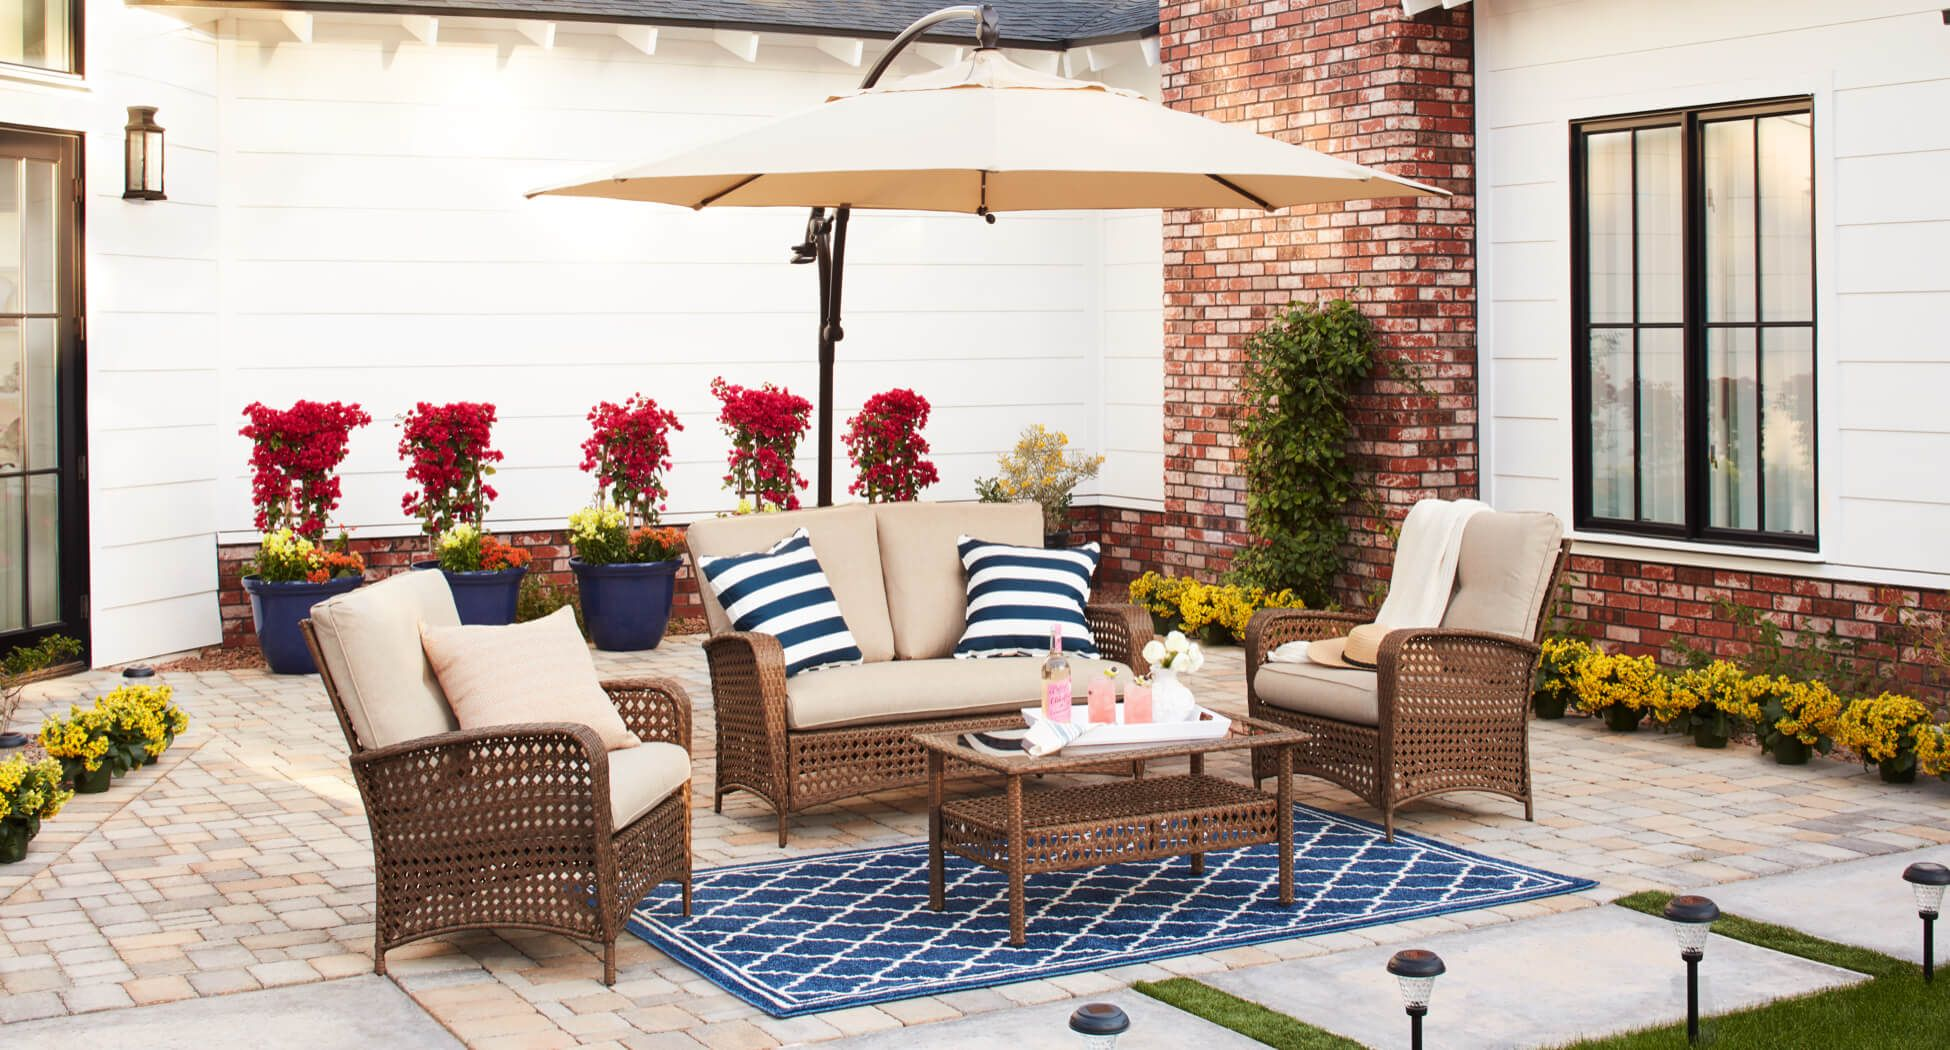 Patio furniture s color scheme and complement the rest of the patio decor